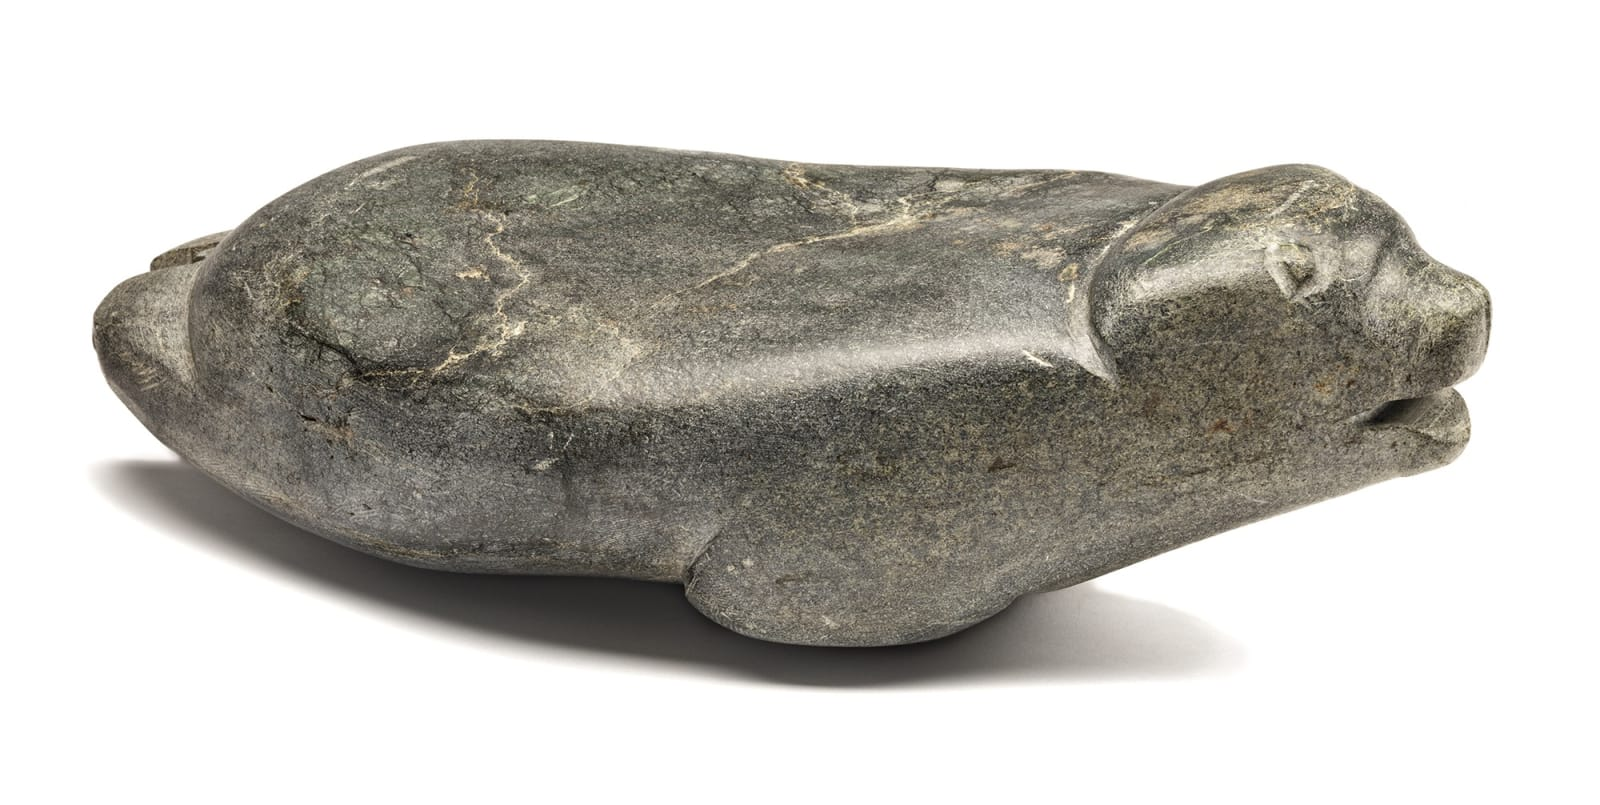 Lot 83 JOHN KAVIK (1897-1993), KANGIQLINIQ (RANKIN INLET) Seal, 1967 stone, 5.25 x 17.25 x 8.5 in (13.3 x 43.8 x 21.6 cm) Estimate: $6,000⁠⁠⁠— $9,000 Price realized: $5,760